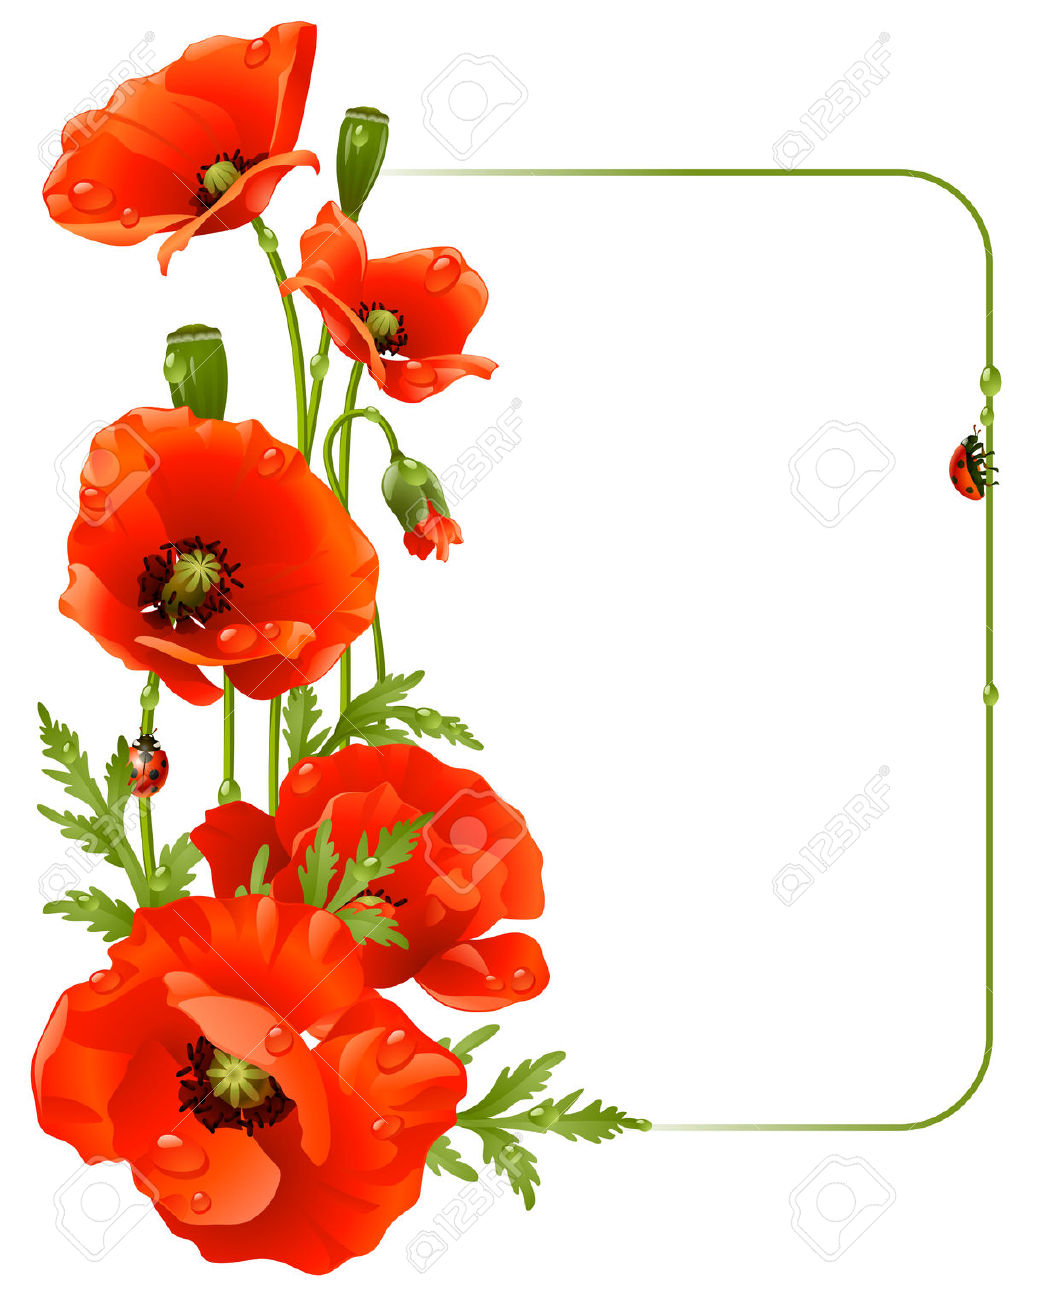 Orange Flower clipart flower bottom border Clipart poppy red Search something